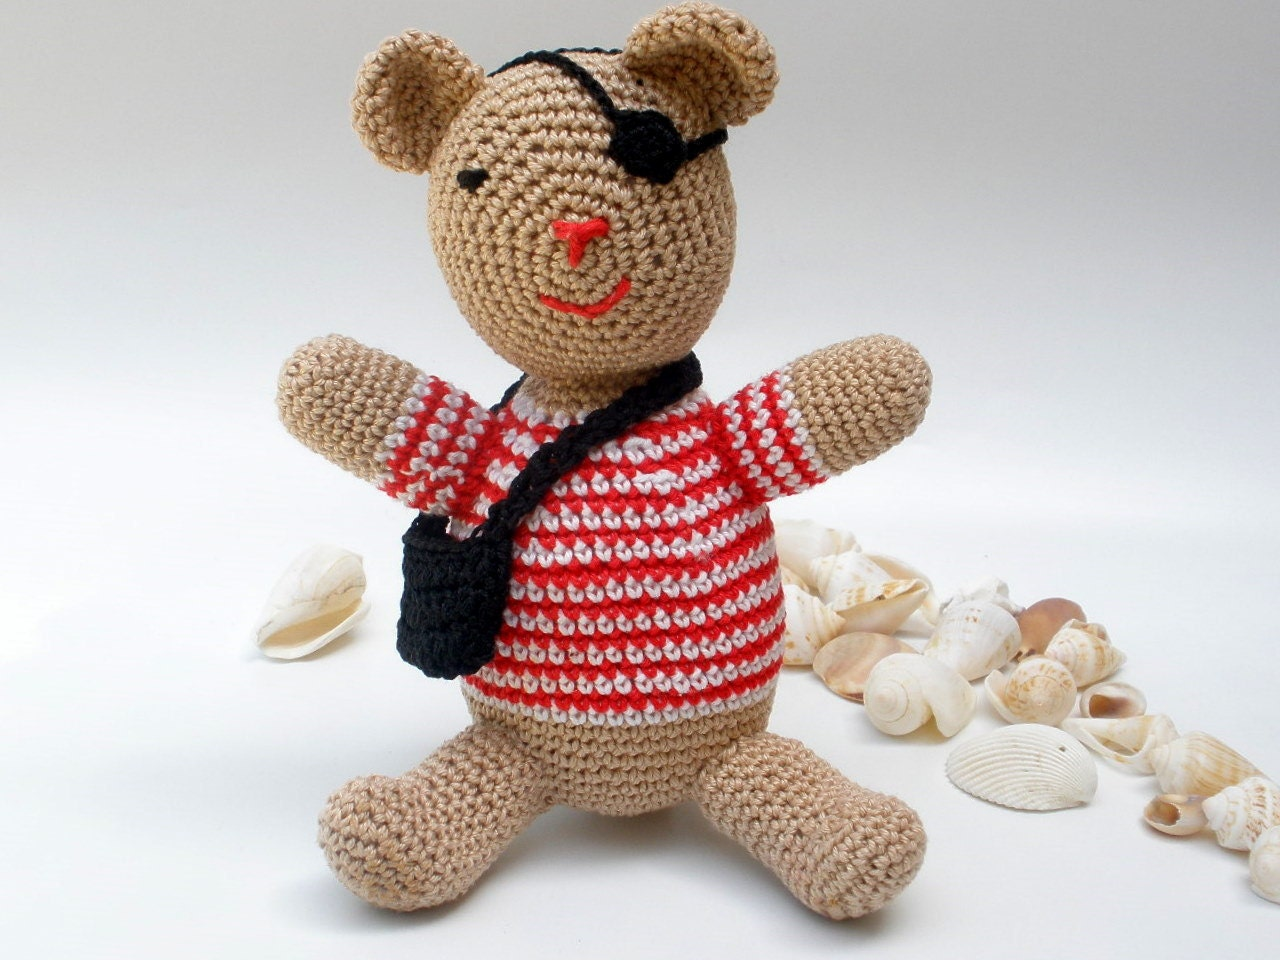 Amigurumi To Go Teddy Bear : How to crochet Amigurumi Captain Pirate Teddy Bear PATTERN